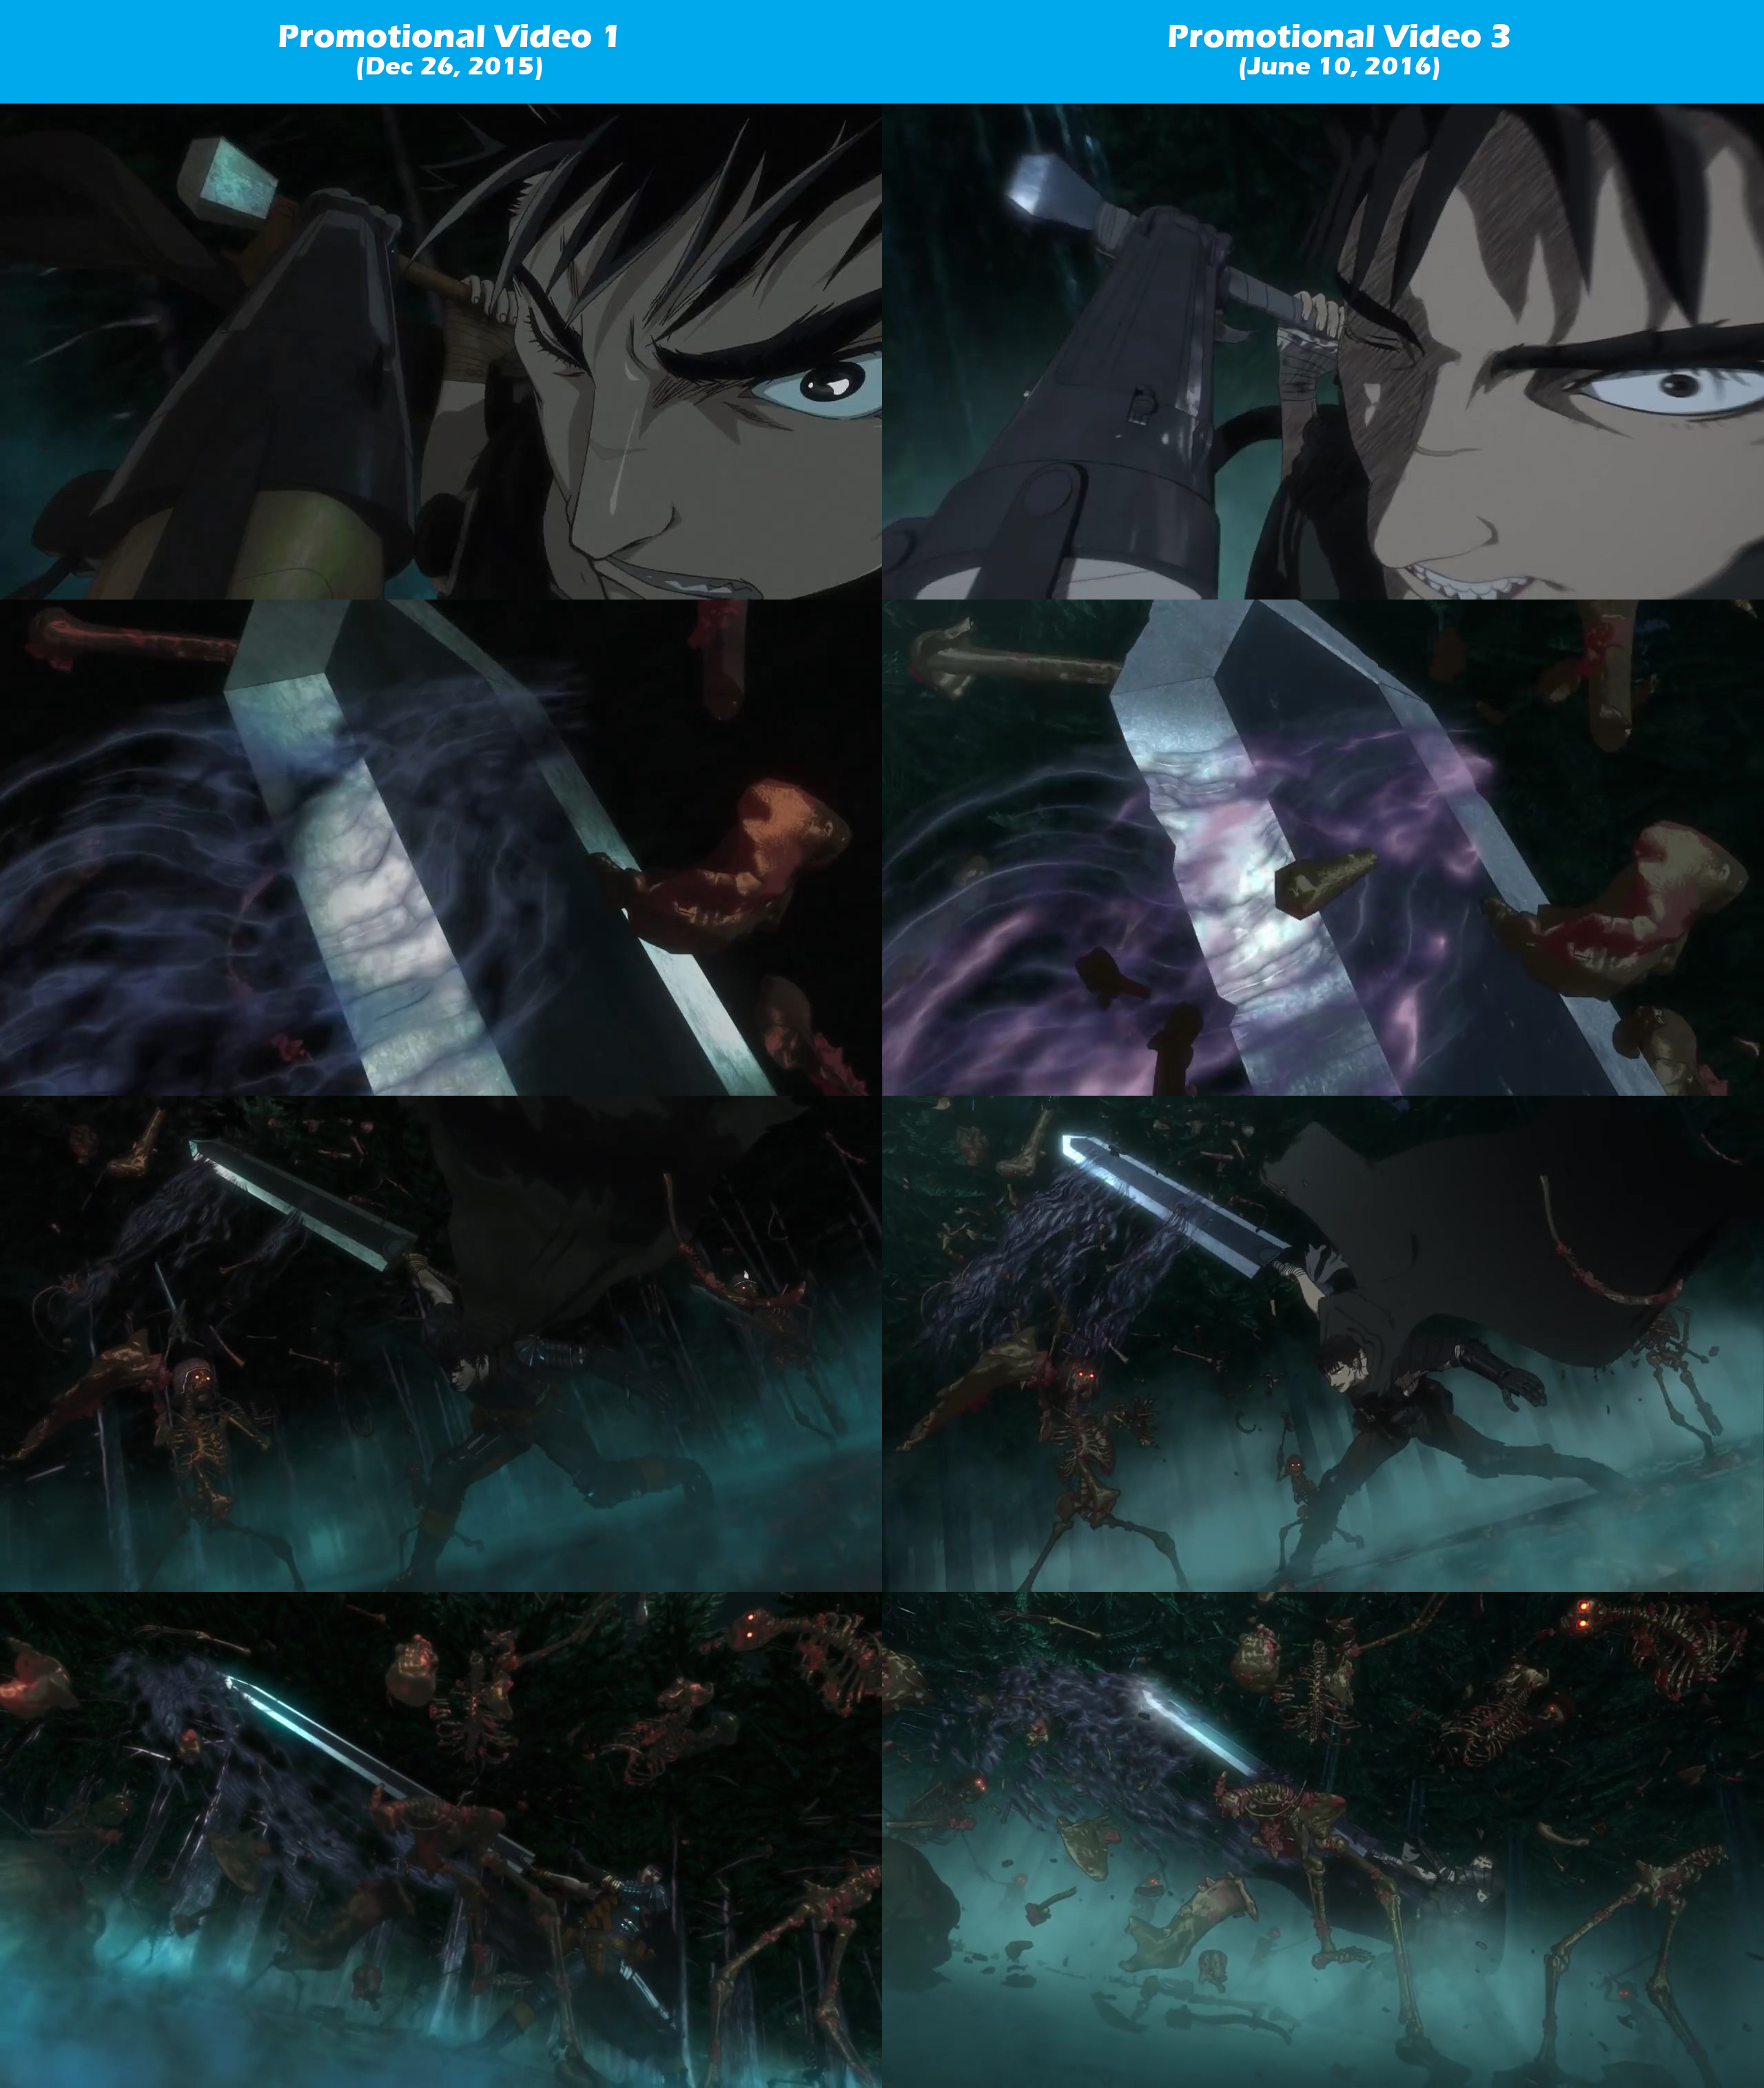 2016-Berserk-Anime-PV-1-vs-PV-3-Comparison-3